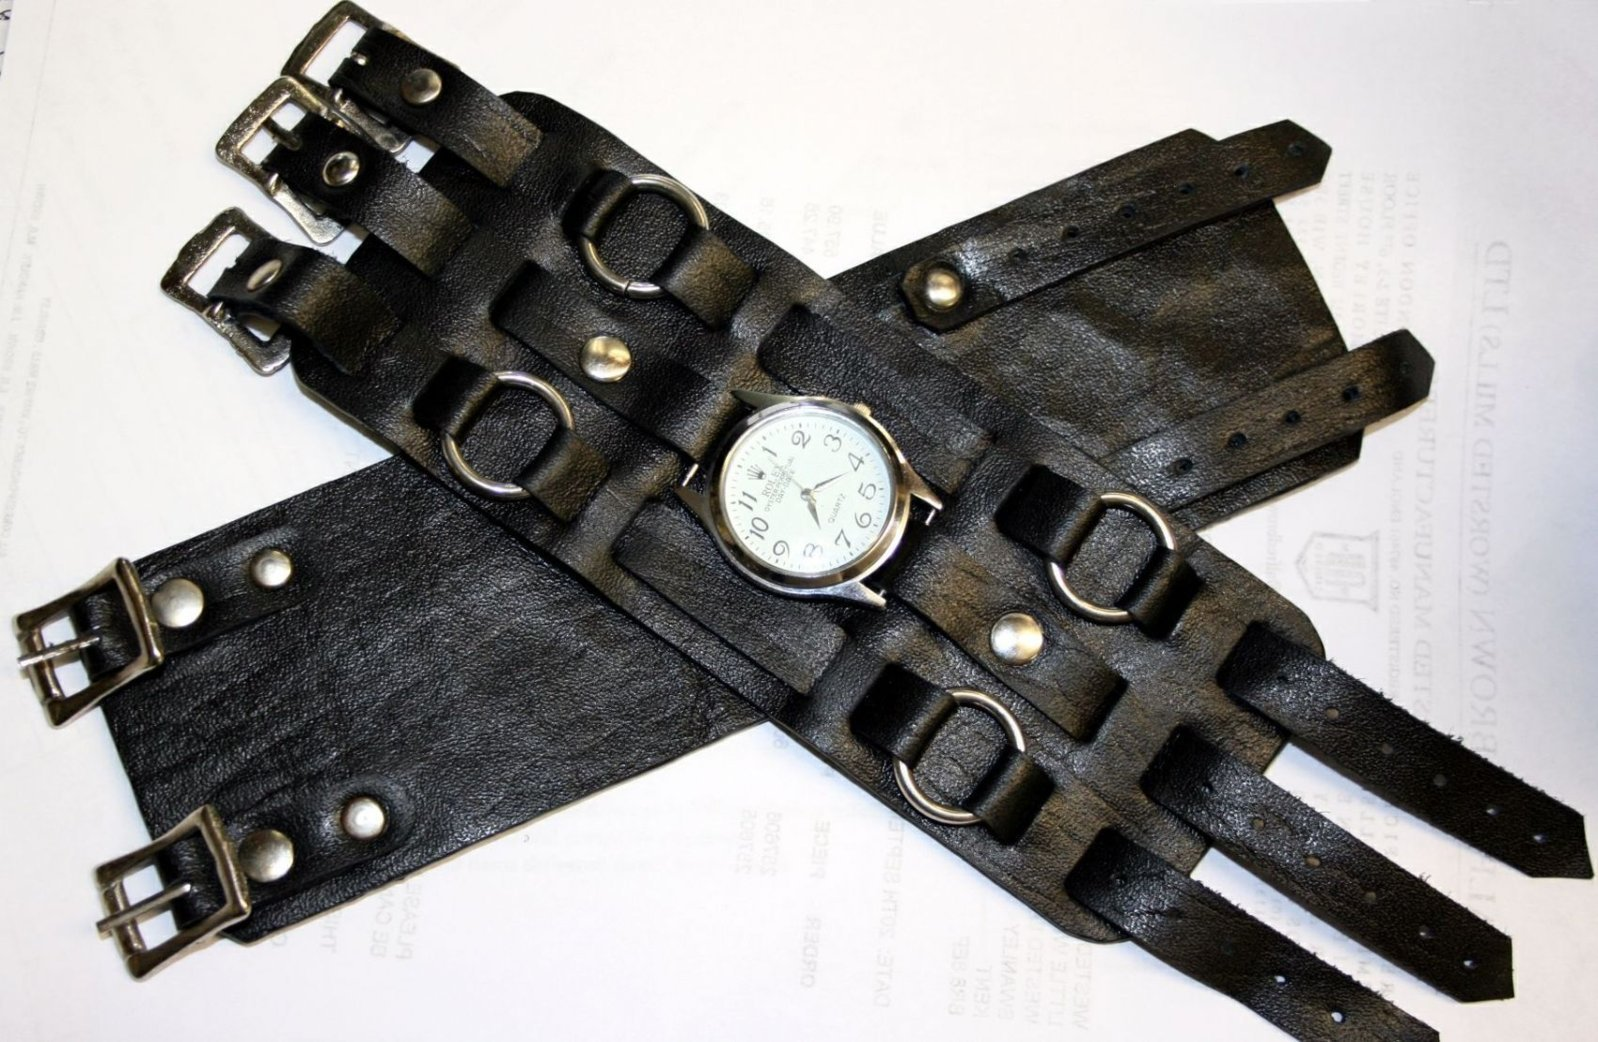 elvis-leather-wrist-strap-with-watch-786-p.jpg